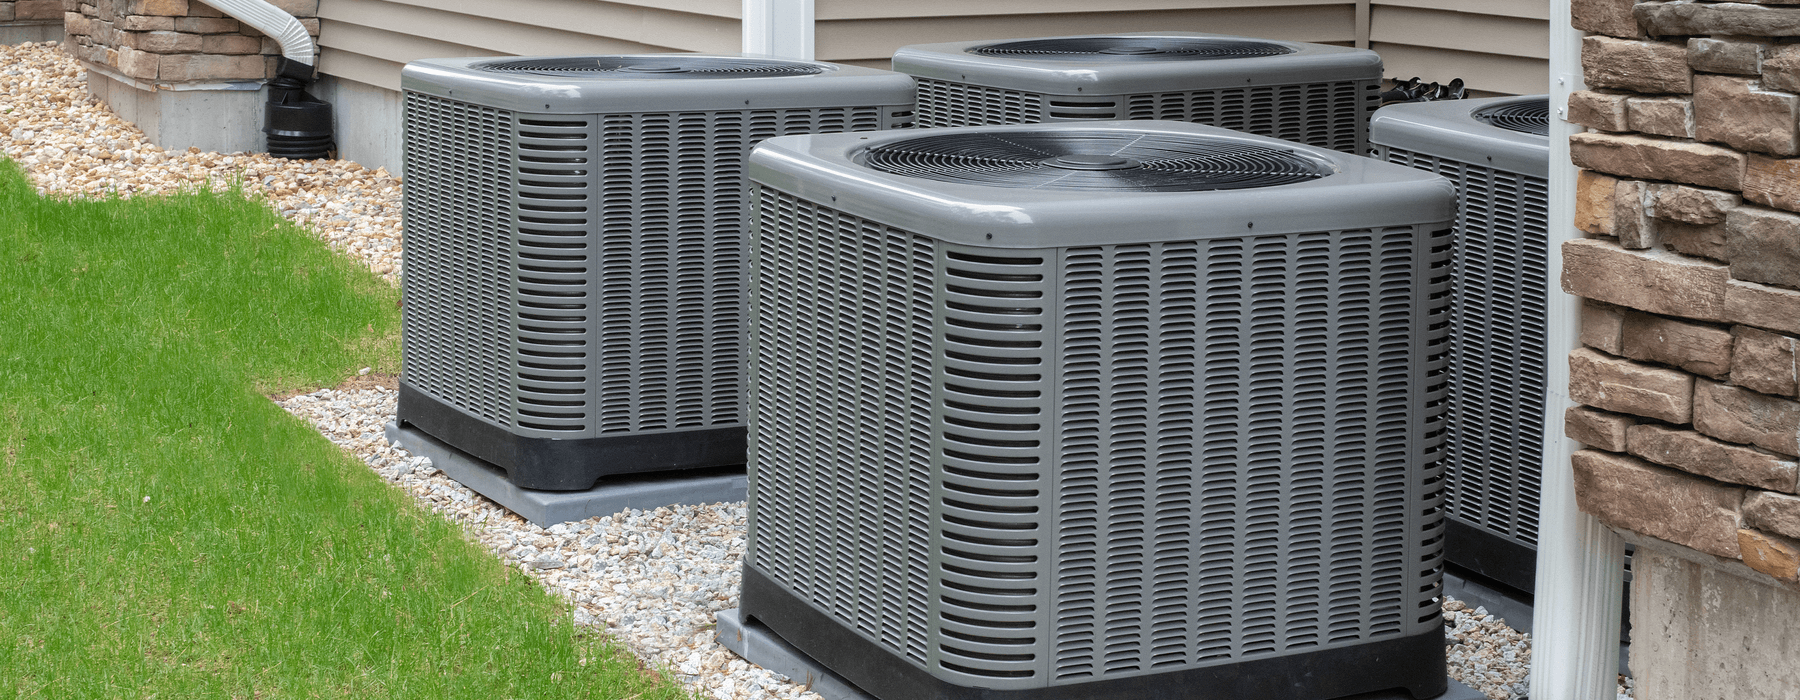 Reducing Building Emissions: Replacing Heating Fuels with Electricity